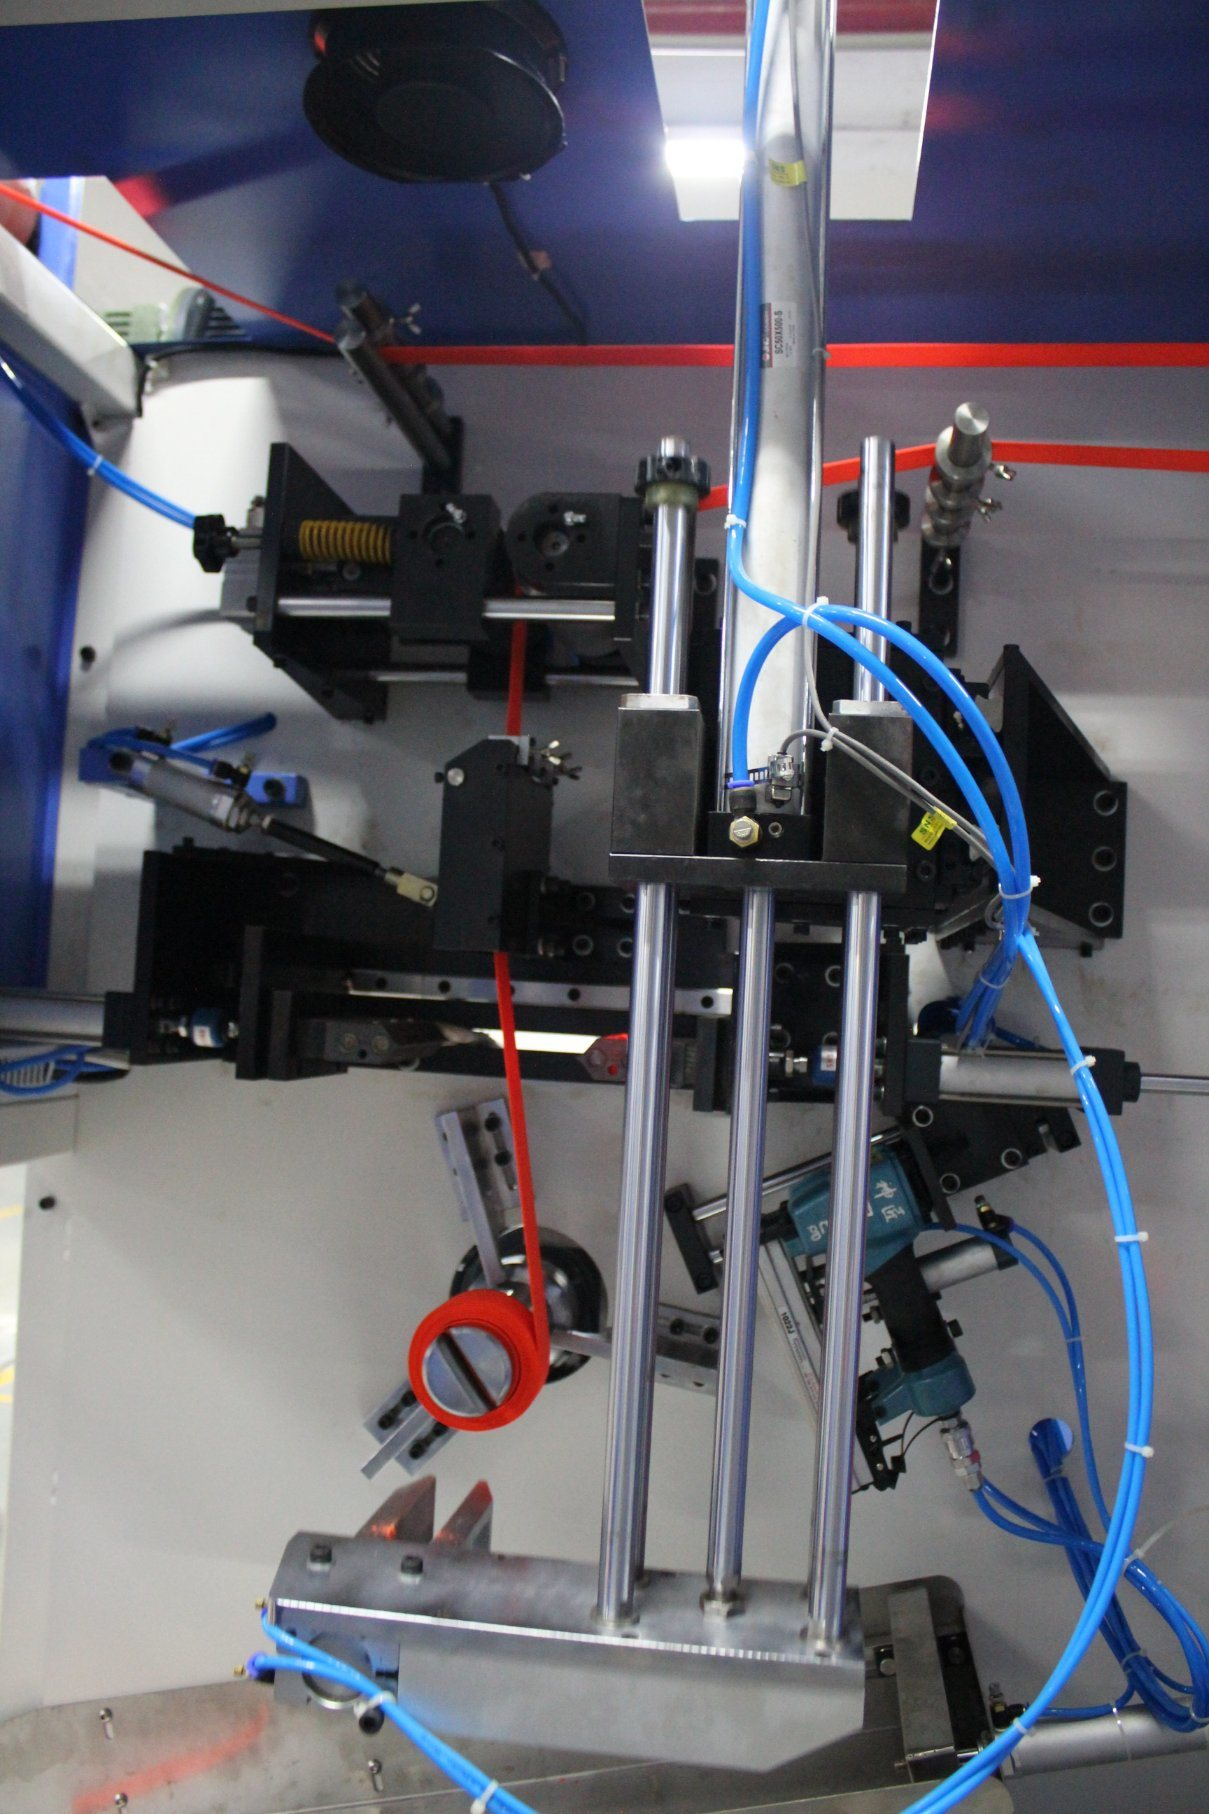 OEM/ODM Factory Harness Webbings Dyeing And Finishing Machine - Bag Belts Automatic Cutting and Winding Machine for Sale – Kin Wah